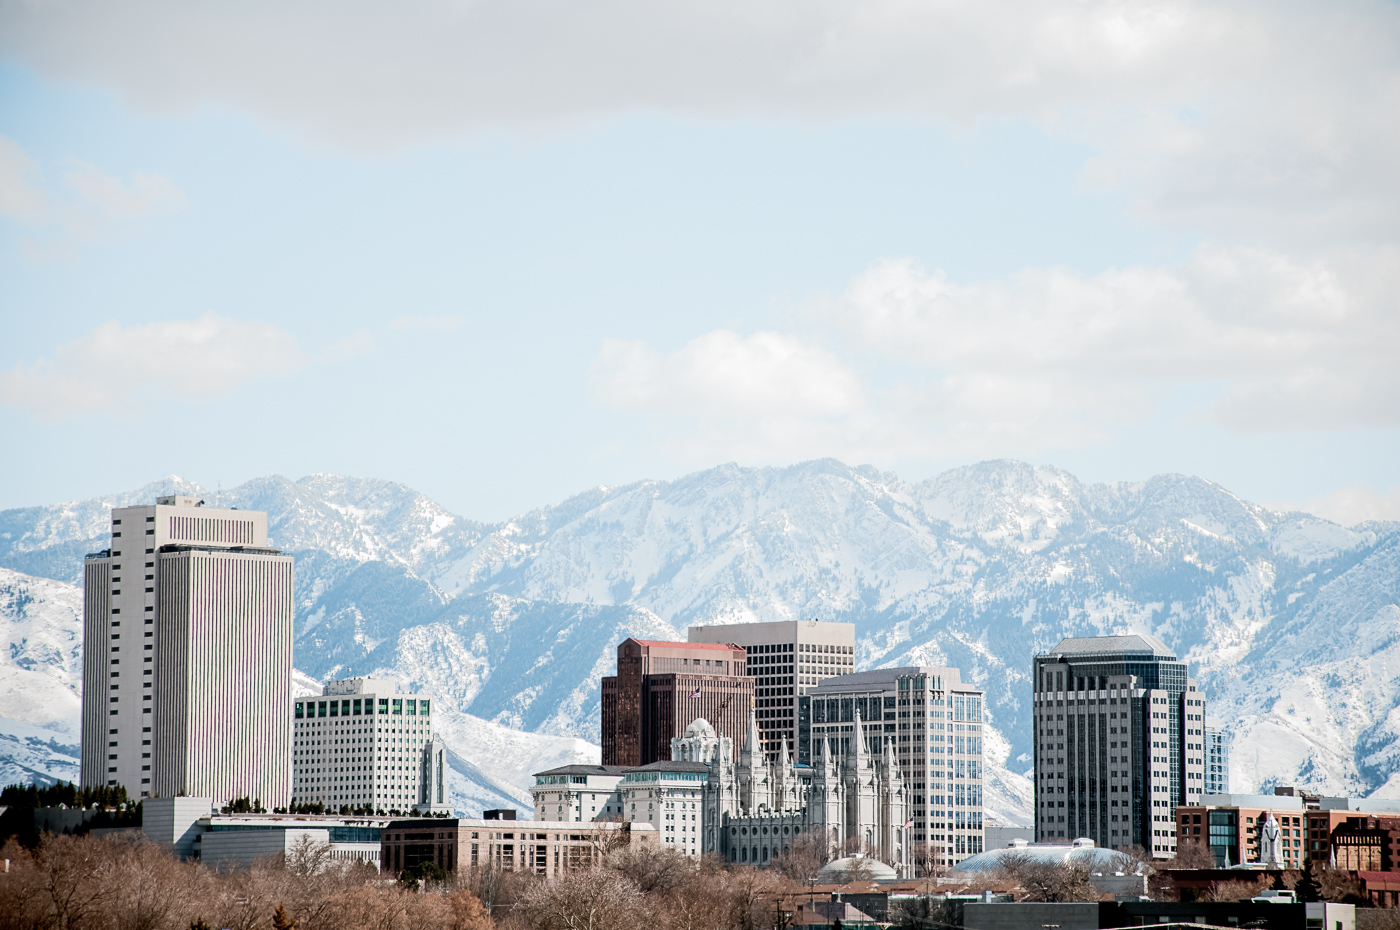 Destination Salt Lake City, suggestions to eat, see, and do!